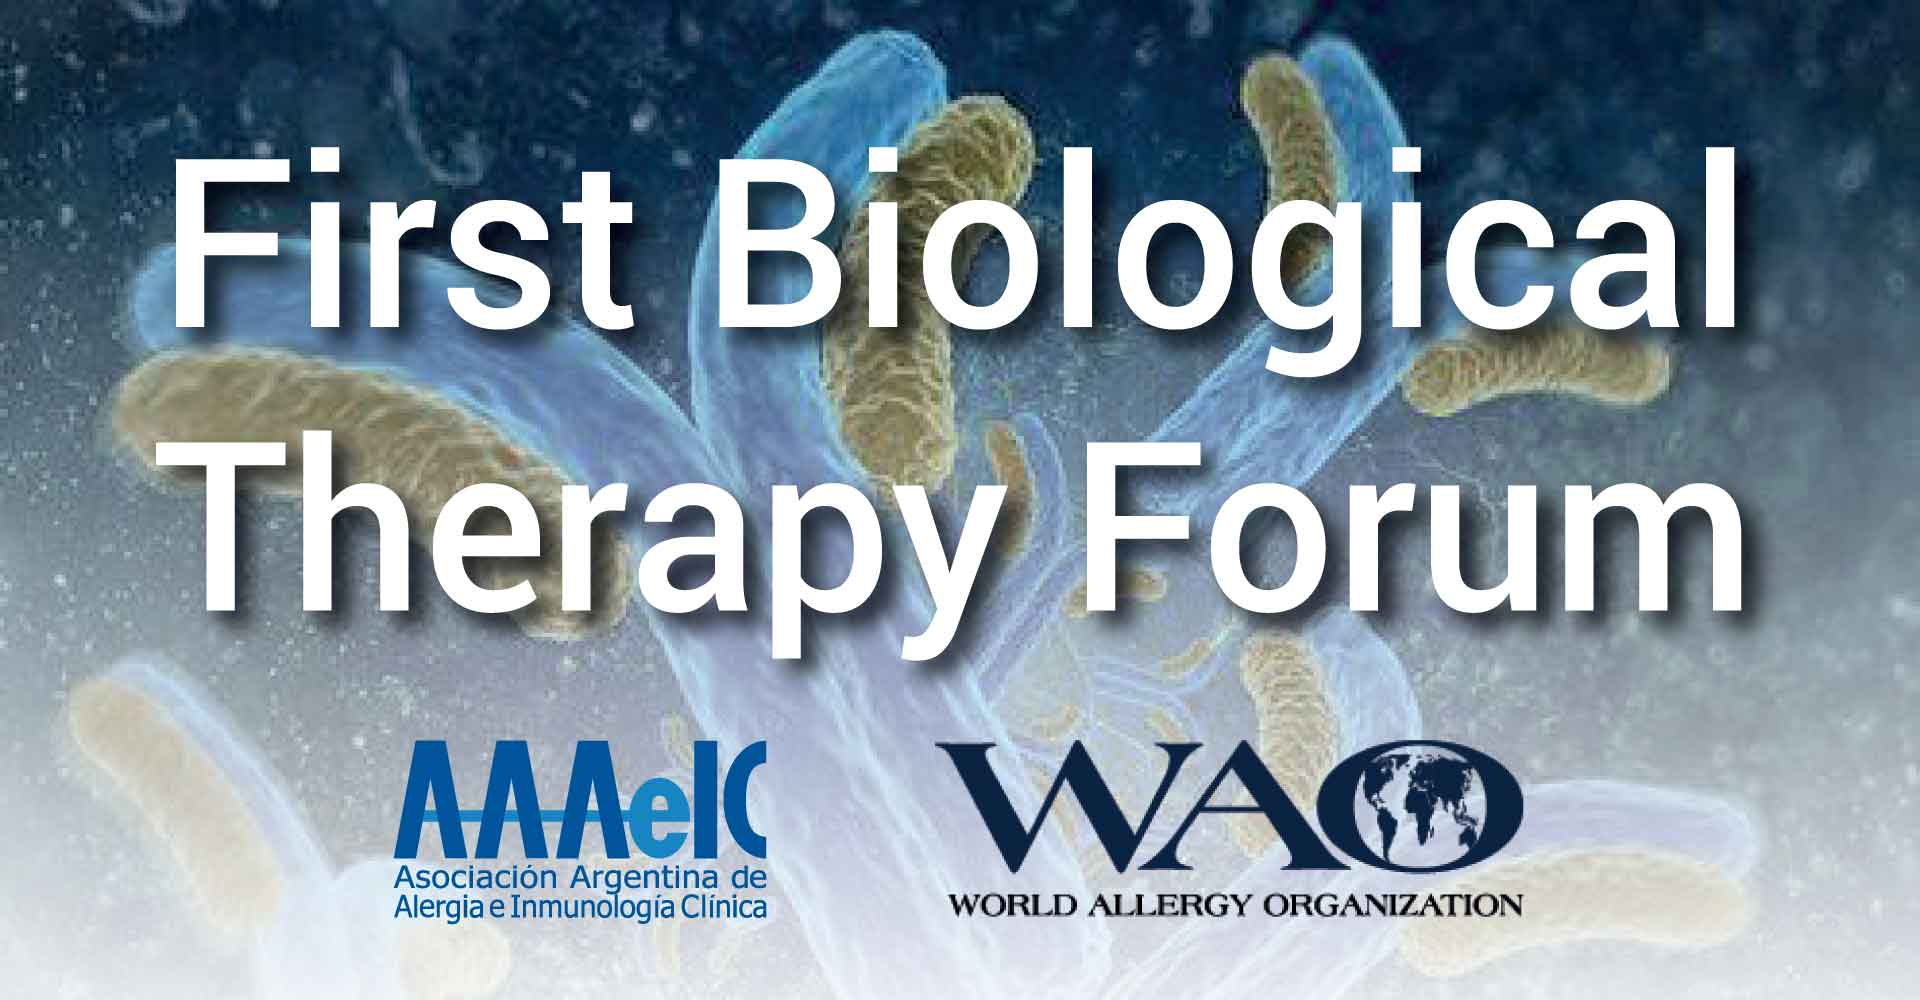 First Biological Therapy Forum